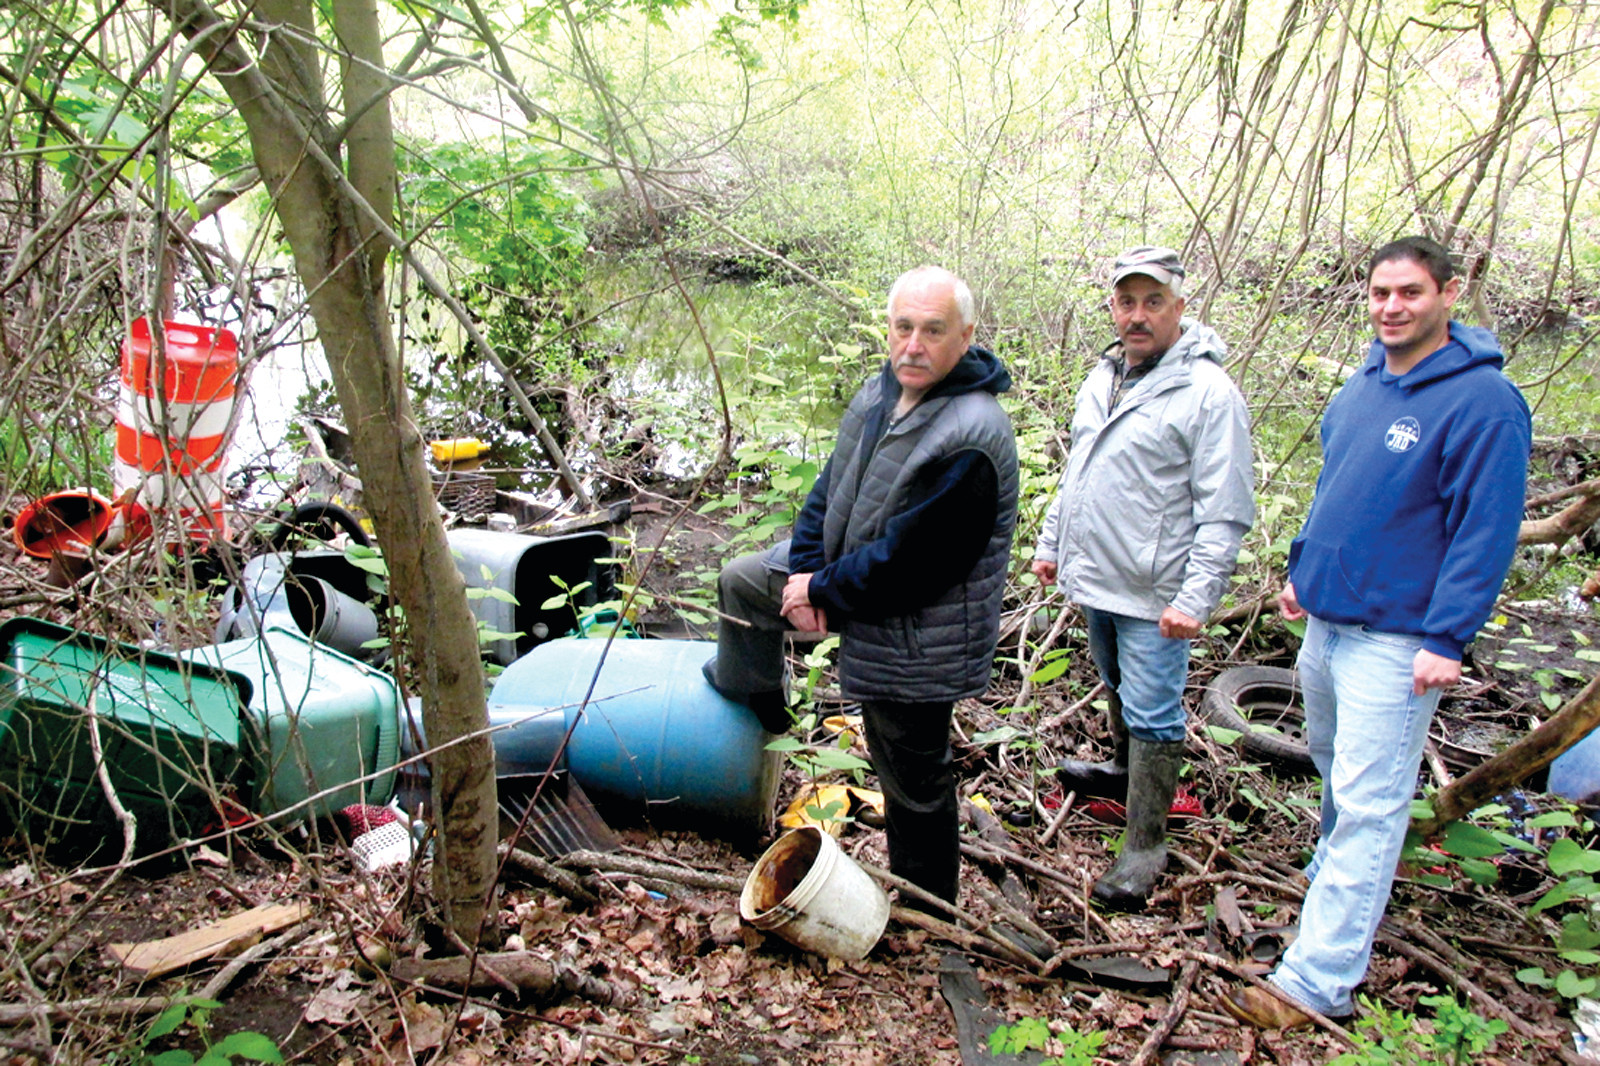 DAMAGING DEBRIS: Johnston Mayor Joseph Polisena, who is joined by Michael Maddalena of the Pawtuxet River Authority and District I Councilman Richard J. DelFino III, puts his foot on this large garbage container and looks around at other debris that people continue to dump alongside the once beautiful waterway.